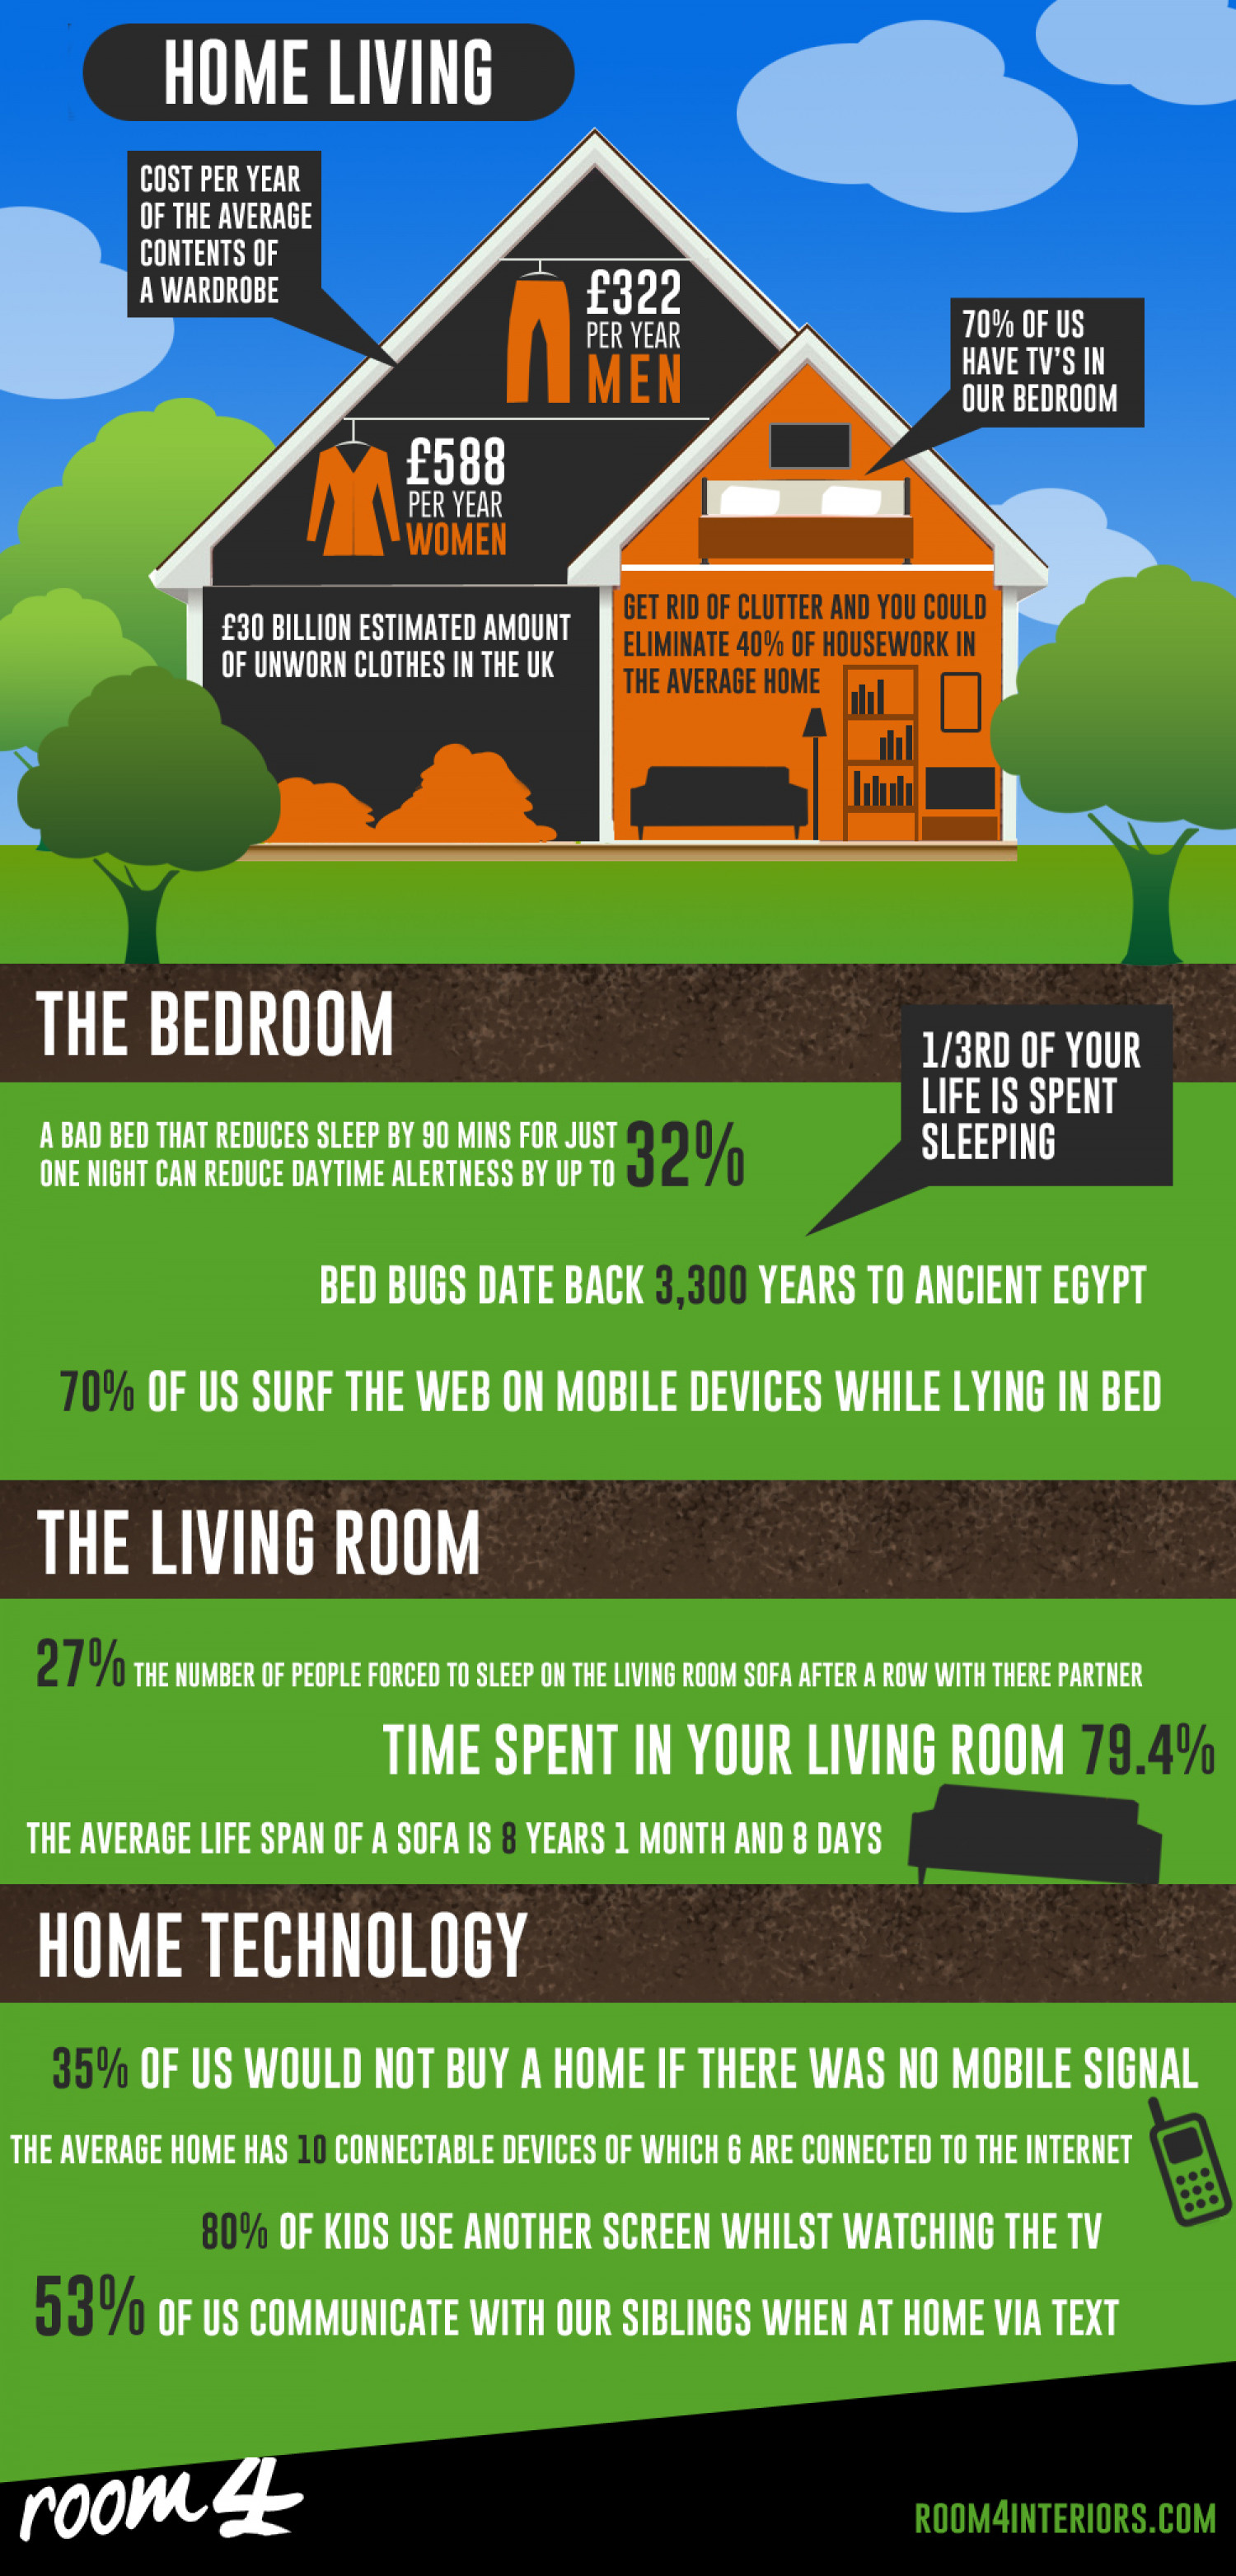 Home Living Infographic